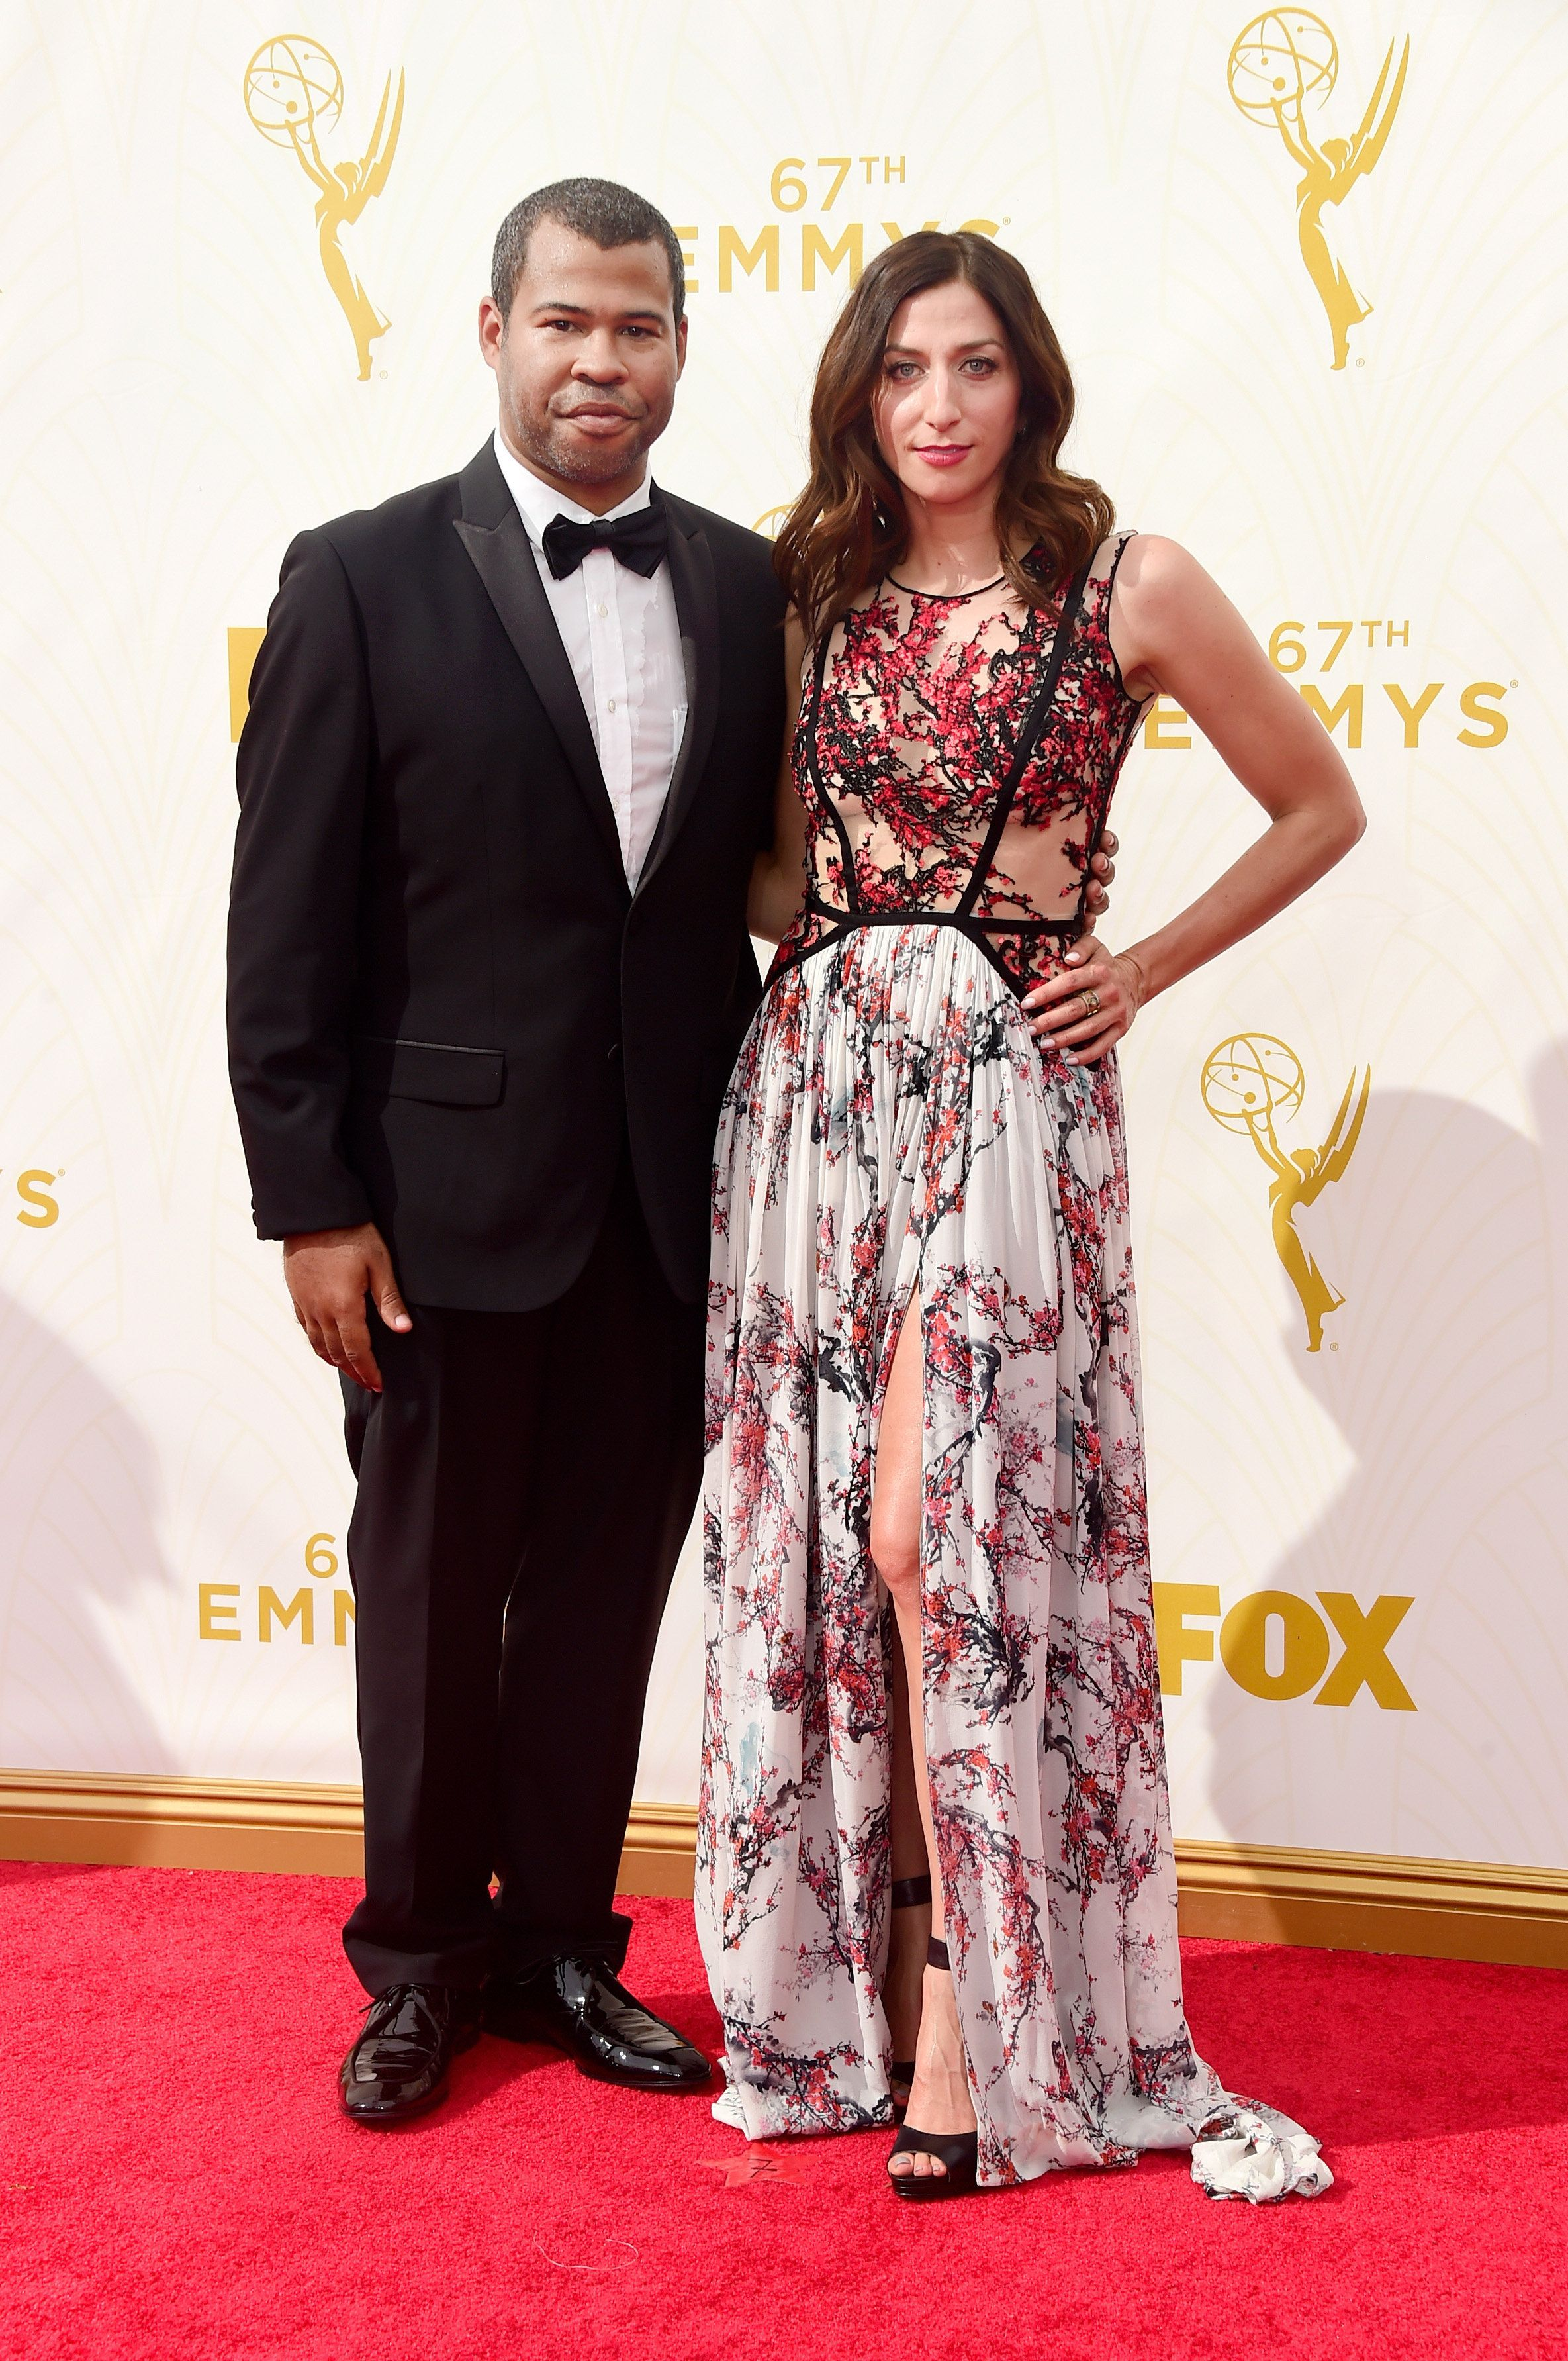 LOS ANGELES, CA - SEPTEMBER 20: Actors Jordan Peele (L) and Chelsea Peretti  attend the 67th Annual Primetime Emmy Awards at Microsoft Theater on September 20, 2015 in Los Angeles, California.  (Photo by Frazer Harrison/Getty Images)